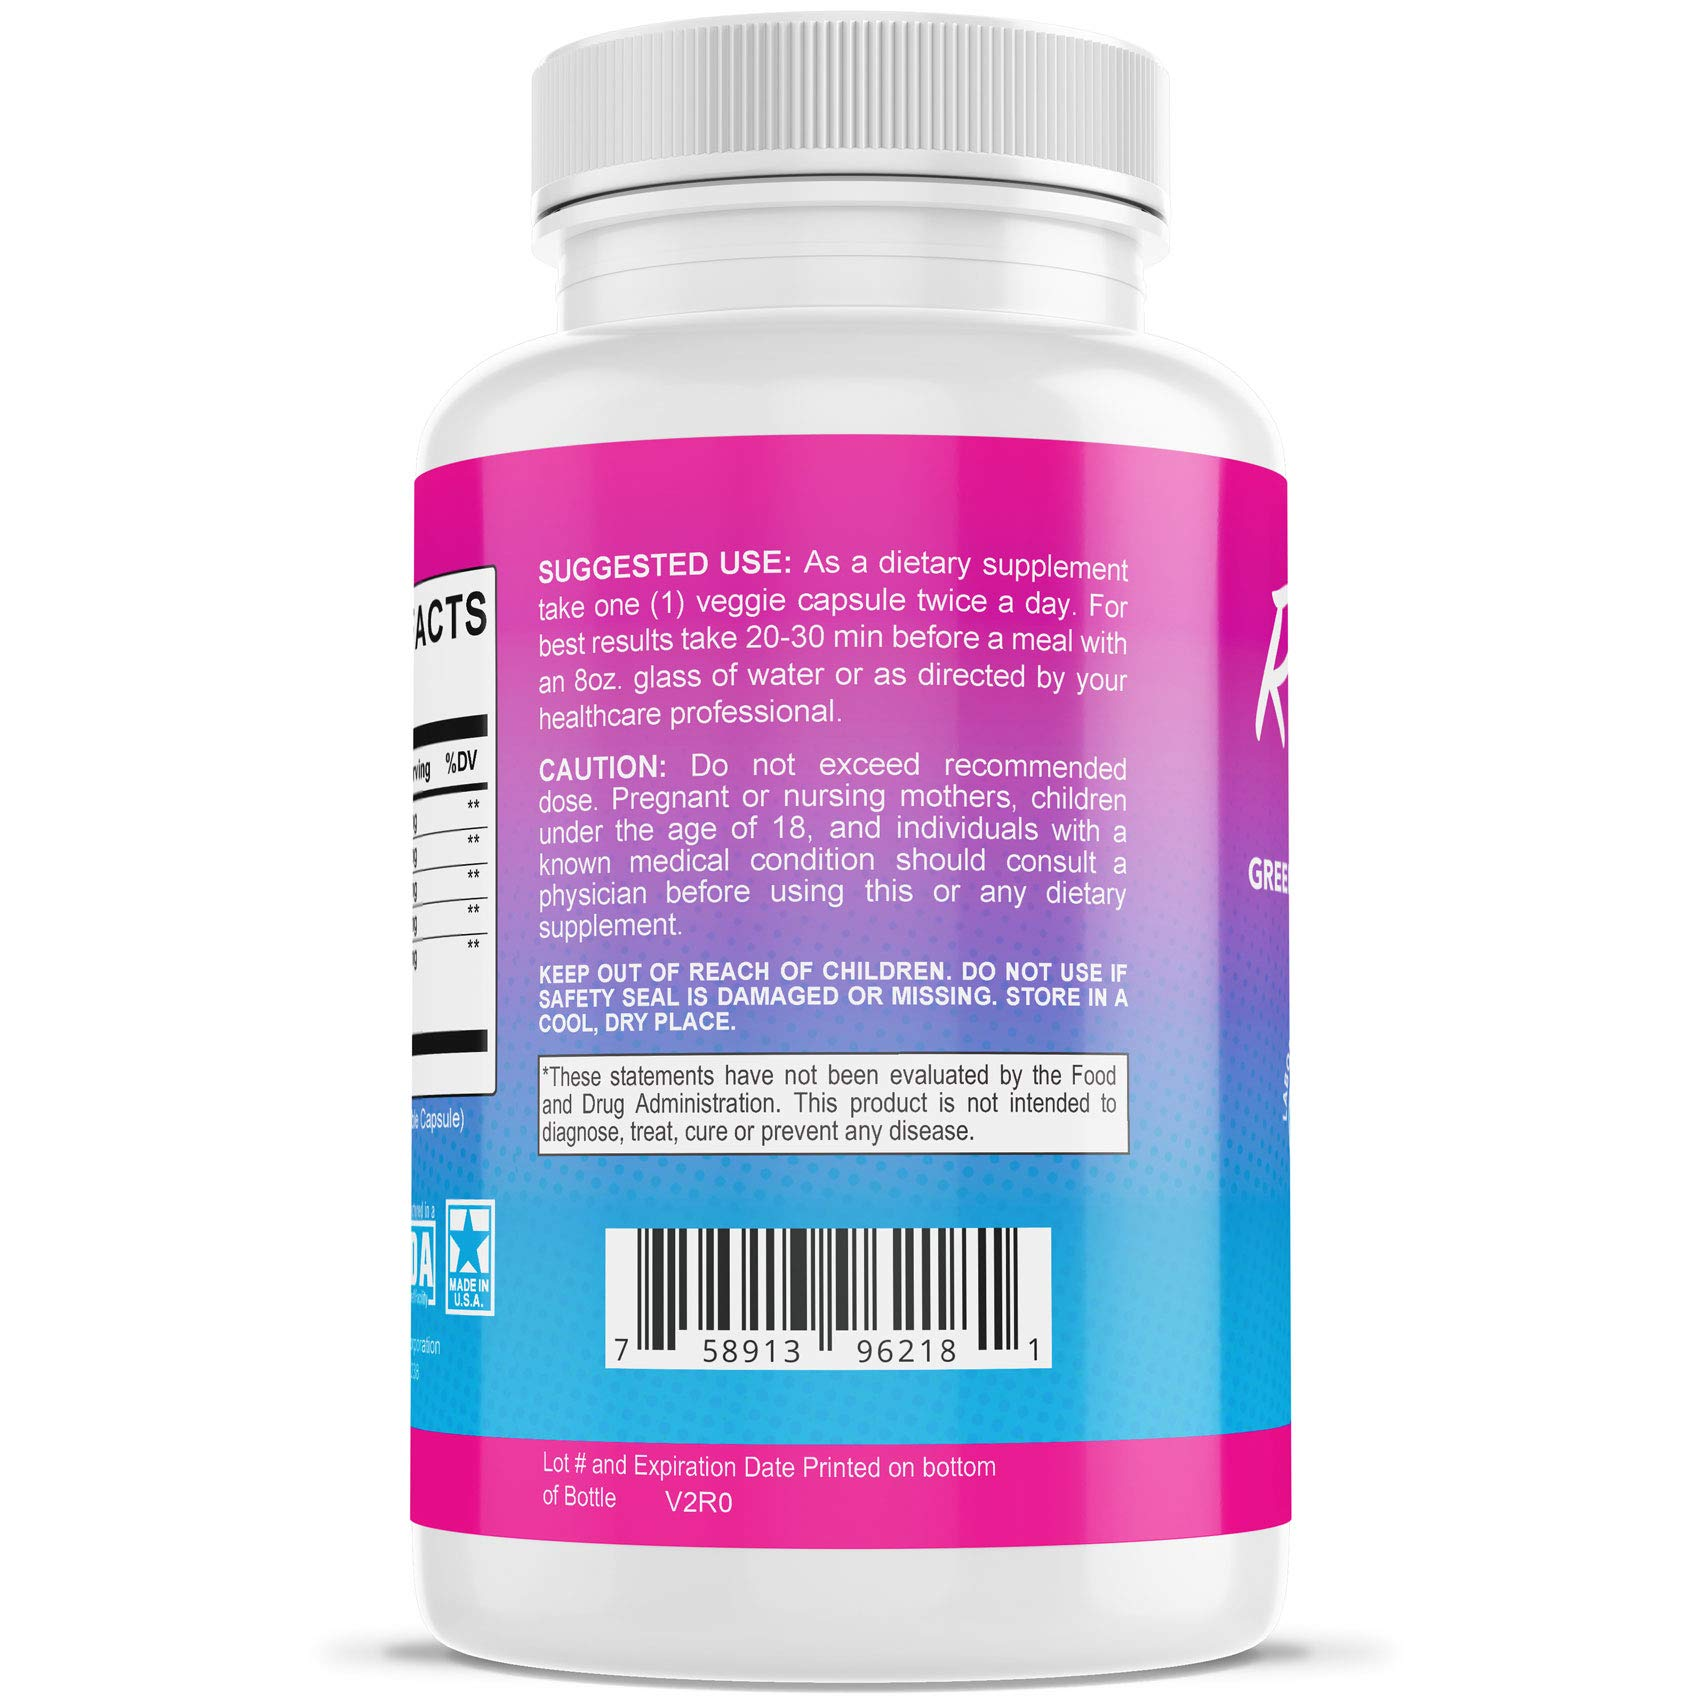 Rapid Tone Weight Loss Pills Supplement - Burn Fat Quicker - Carb Blocker, Appetite Suppressant, Fat Burner - Natural Thermogenic Extreme Diet Fast WeightLoss for Women Men (5 Month Supply) by Rapid Tone (Image #1)